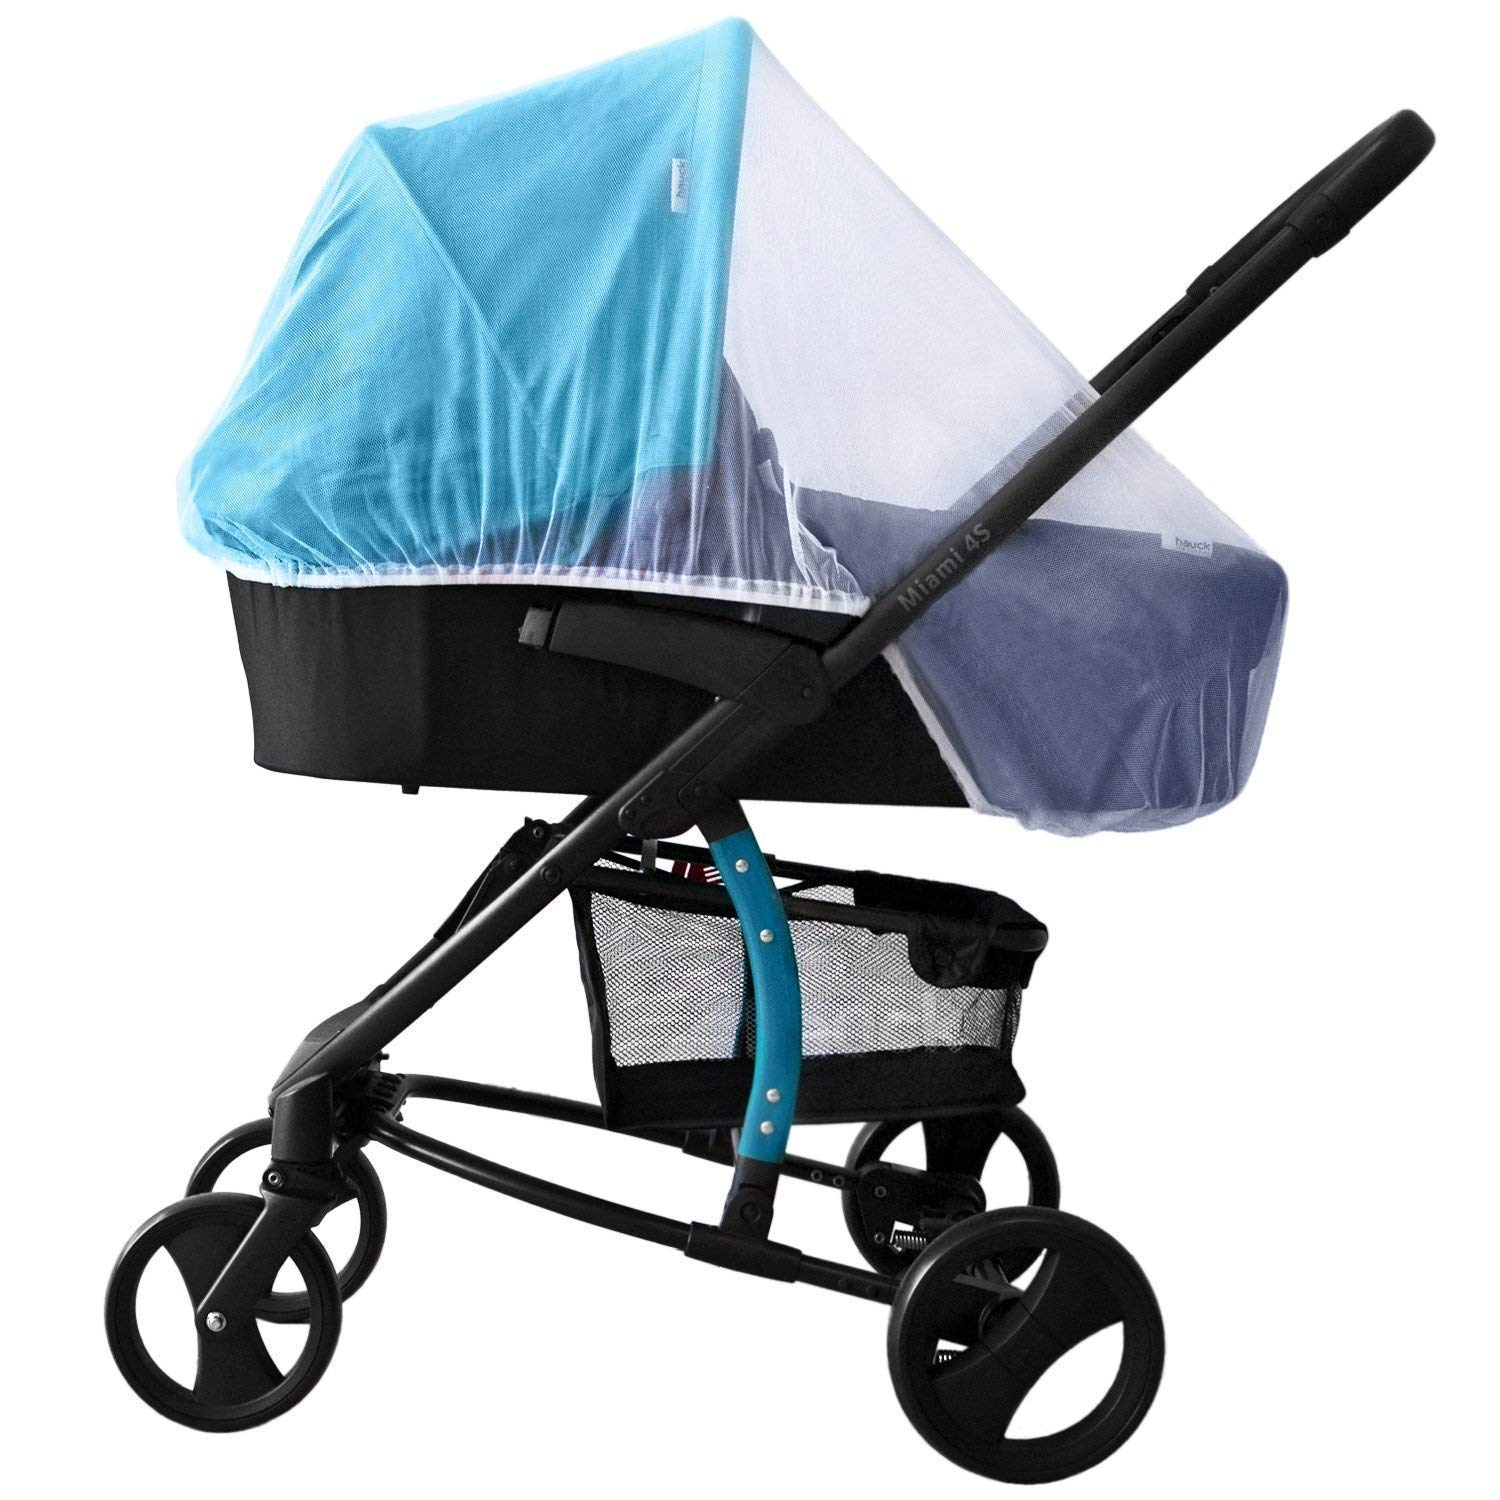 Mosquito Net /& Rain Cover for Stroller 2 Piece Set Stroller Rain Cover Waterproof /& Baby Mosquito Net Universal for Baby Seat,Crib,Bassinet,Carriers Breathable,Waterproof